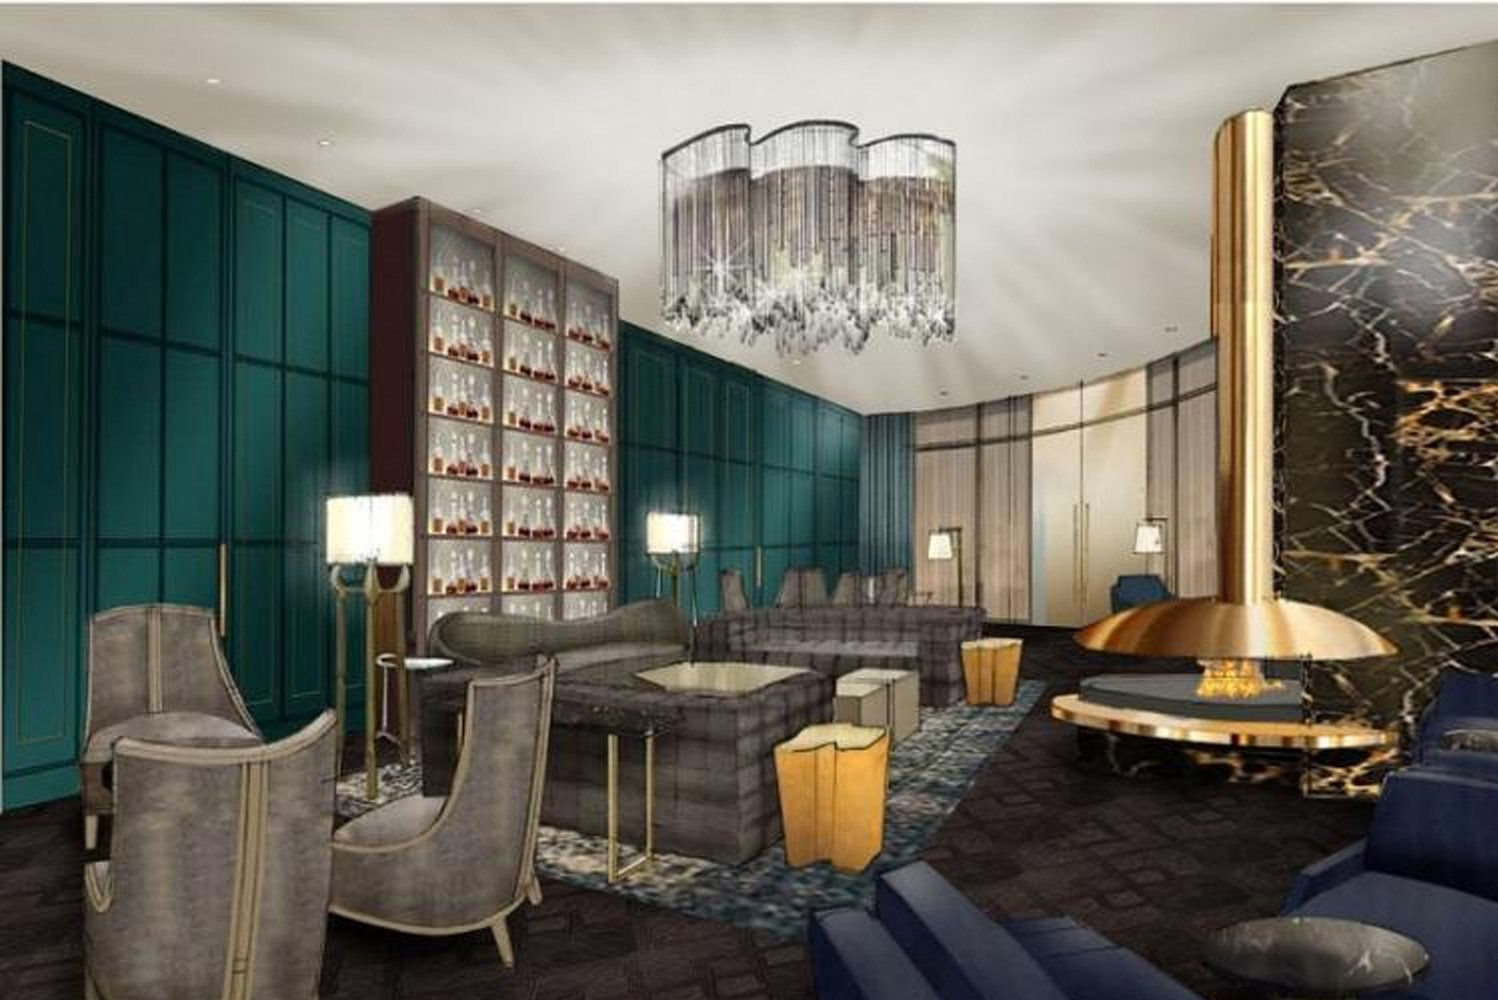 JW Marriott Nashville's interiors will have a modern aesthetic with a warm color scheme and subtle nods to Music City.